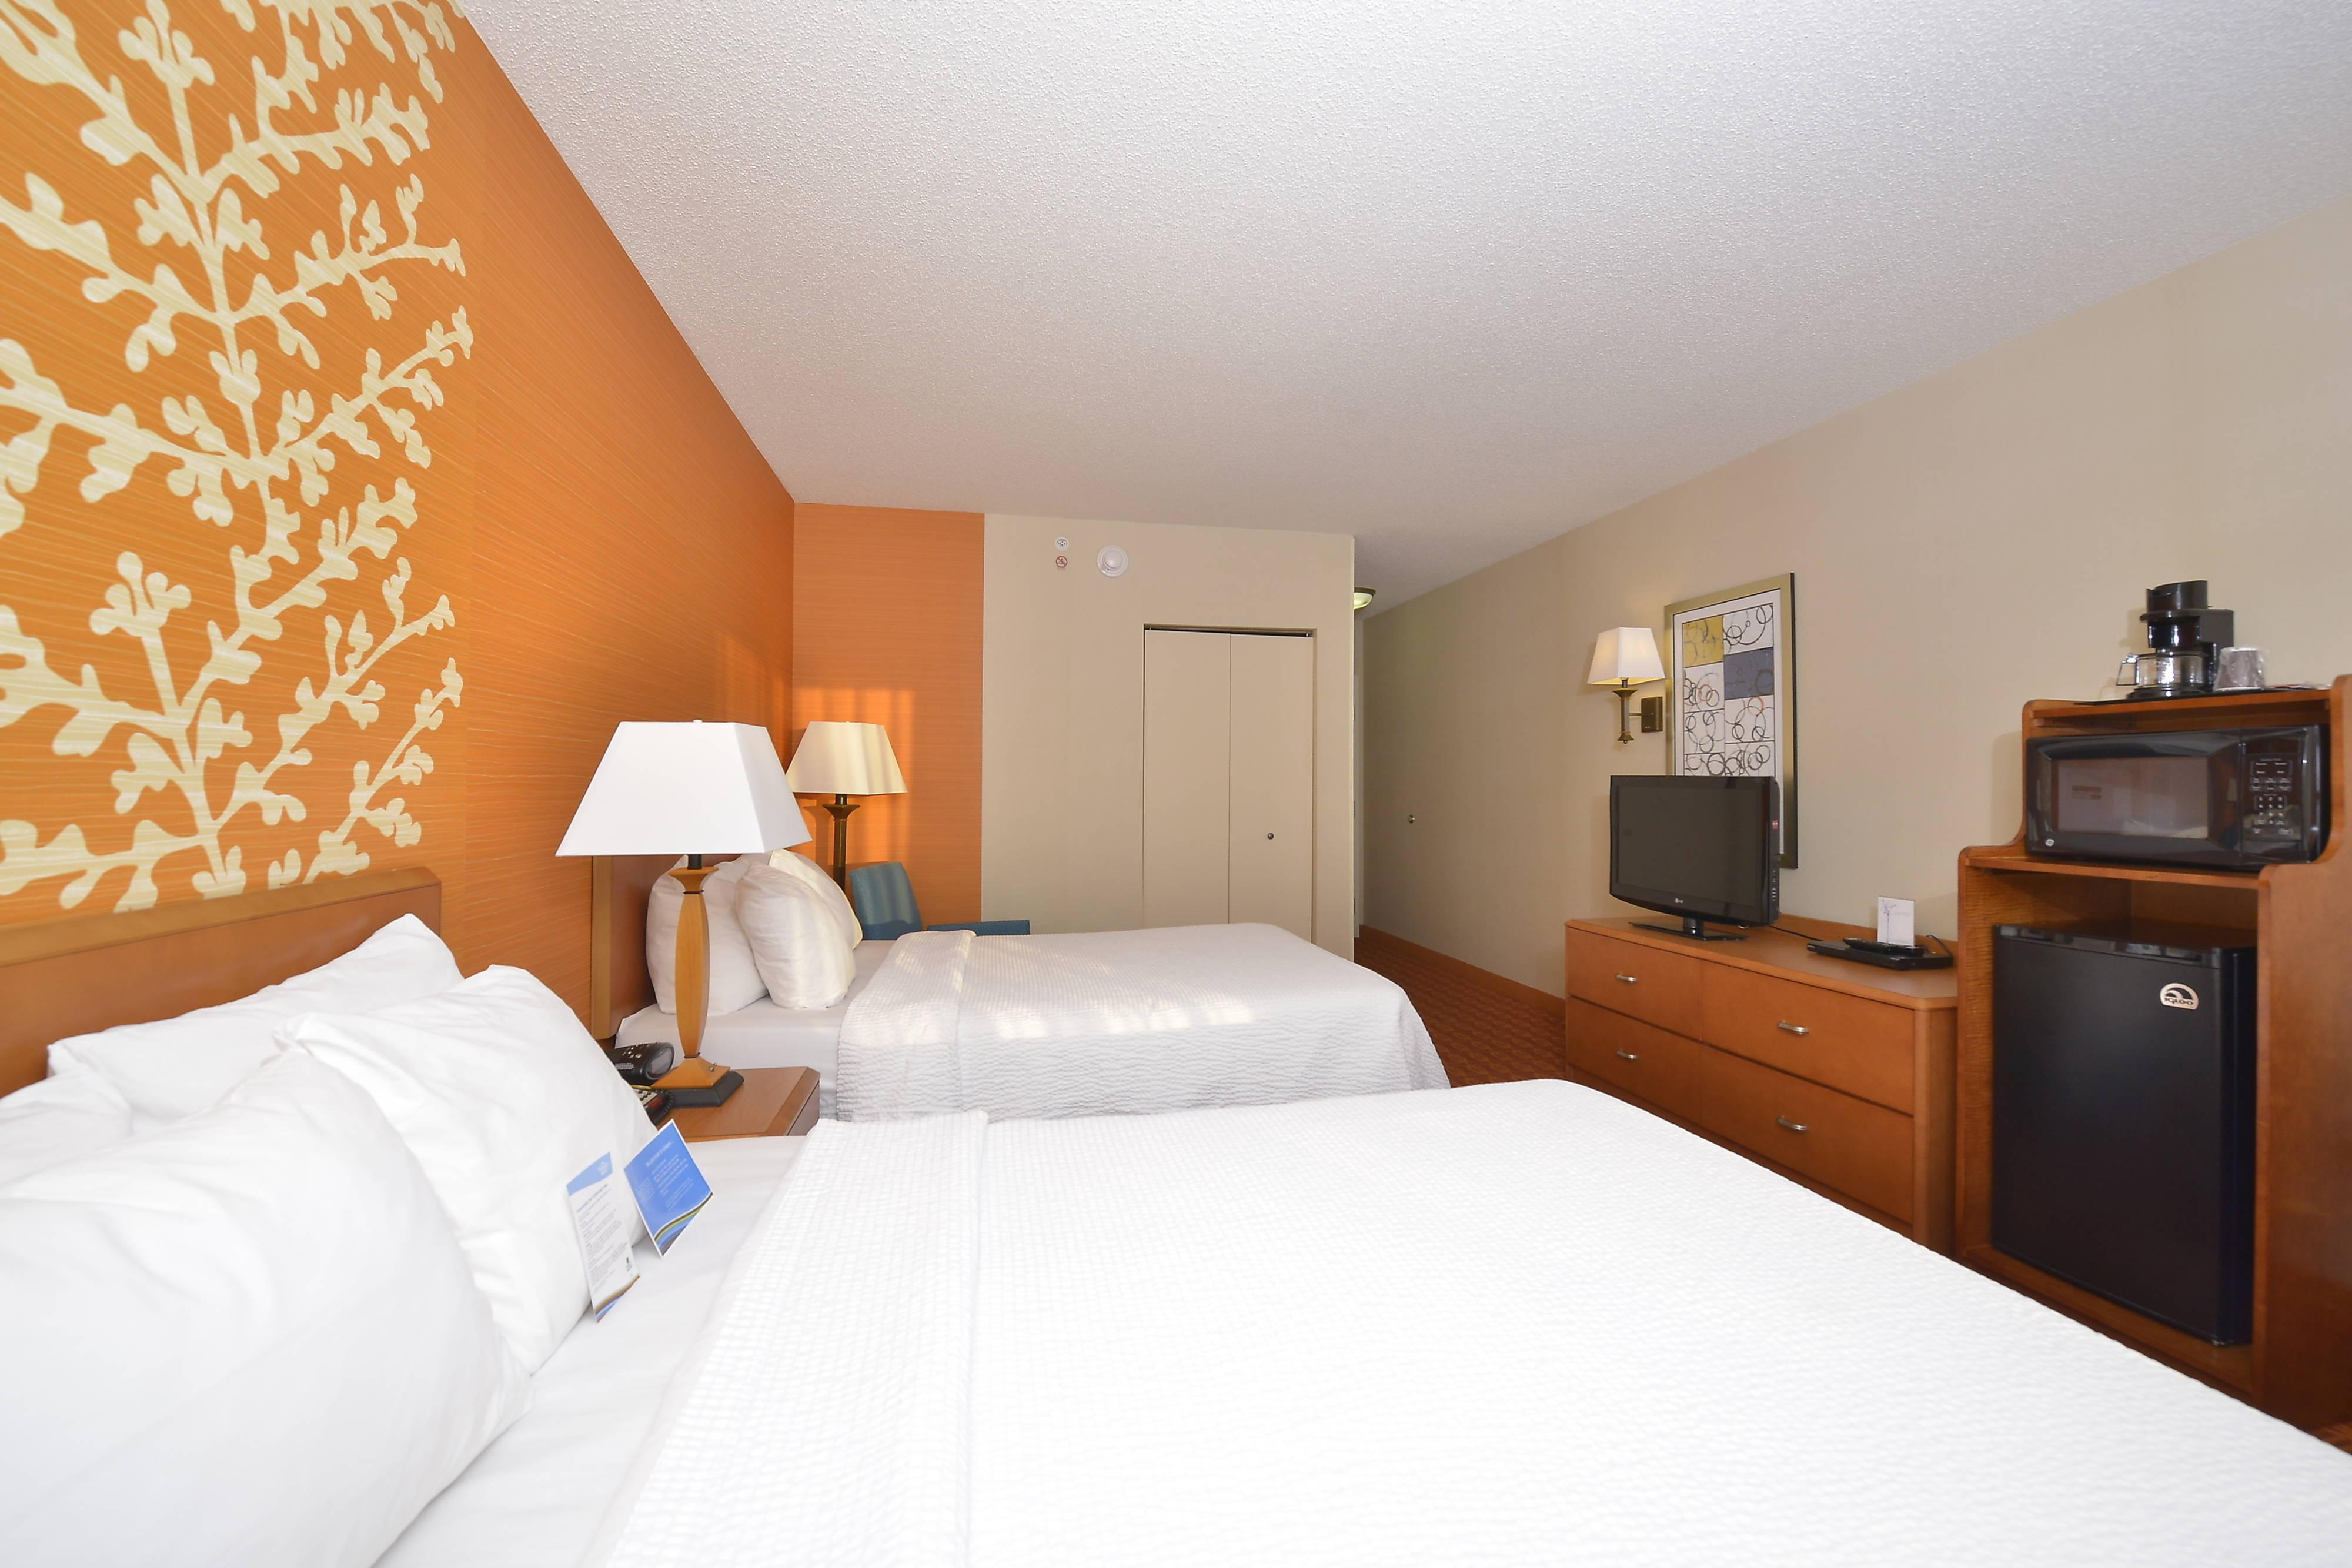 Double/Double Guest Room - Amenities